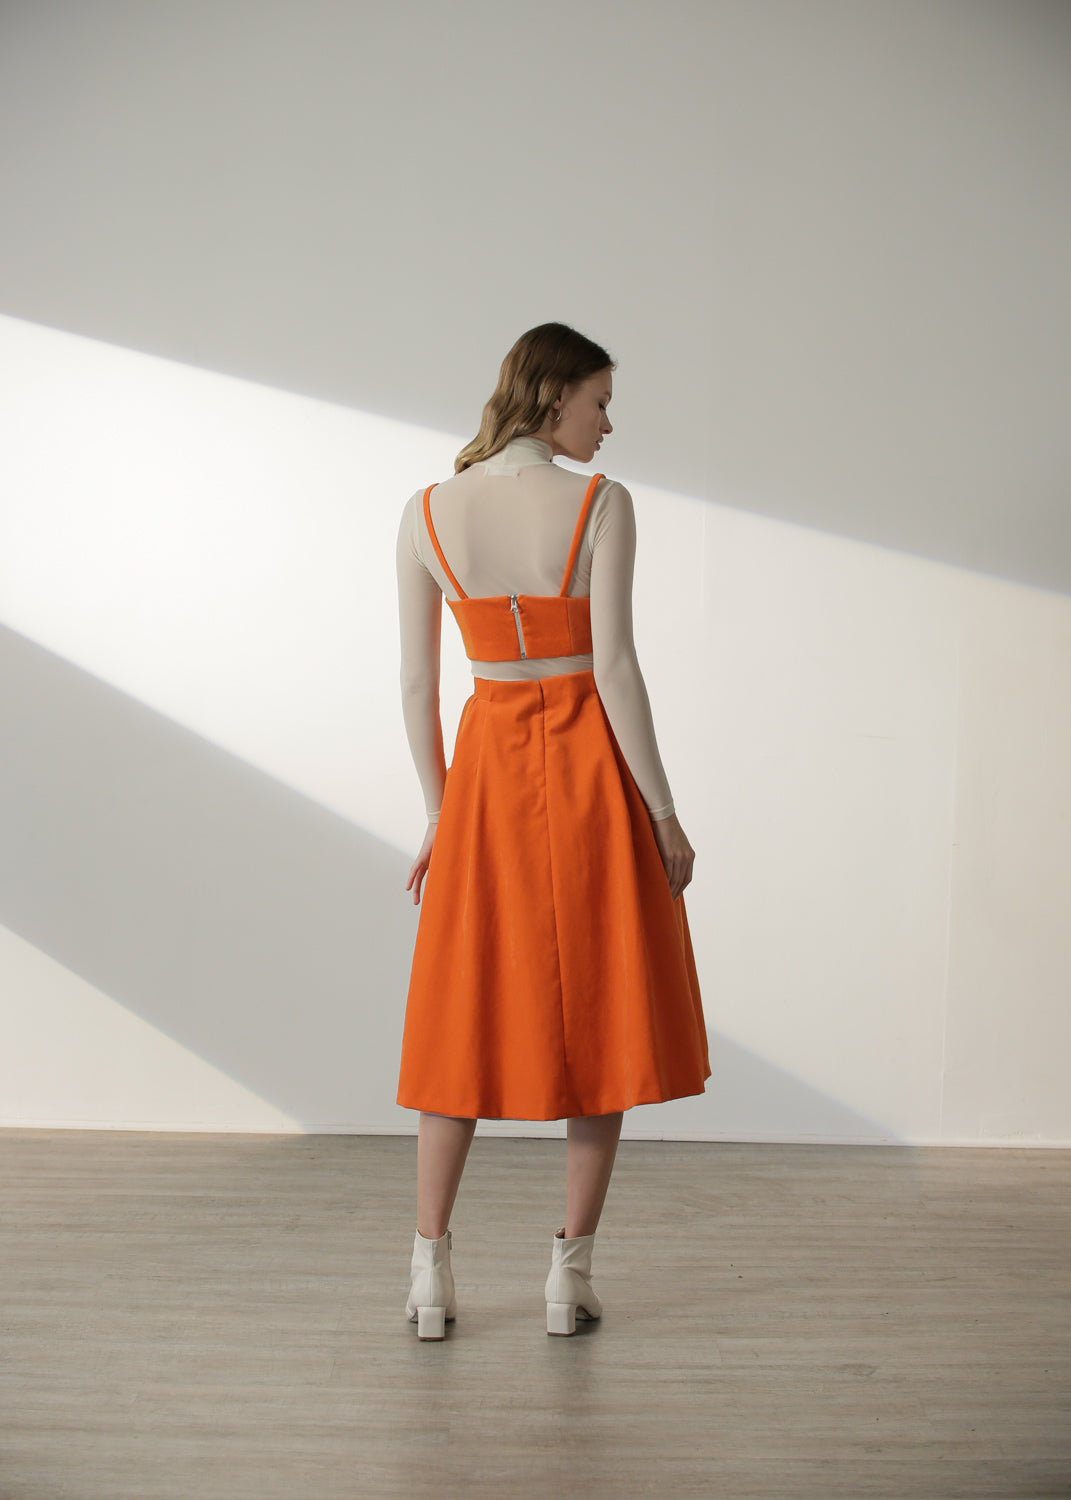 Cleo Skirt in Orange